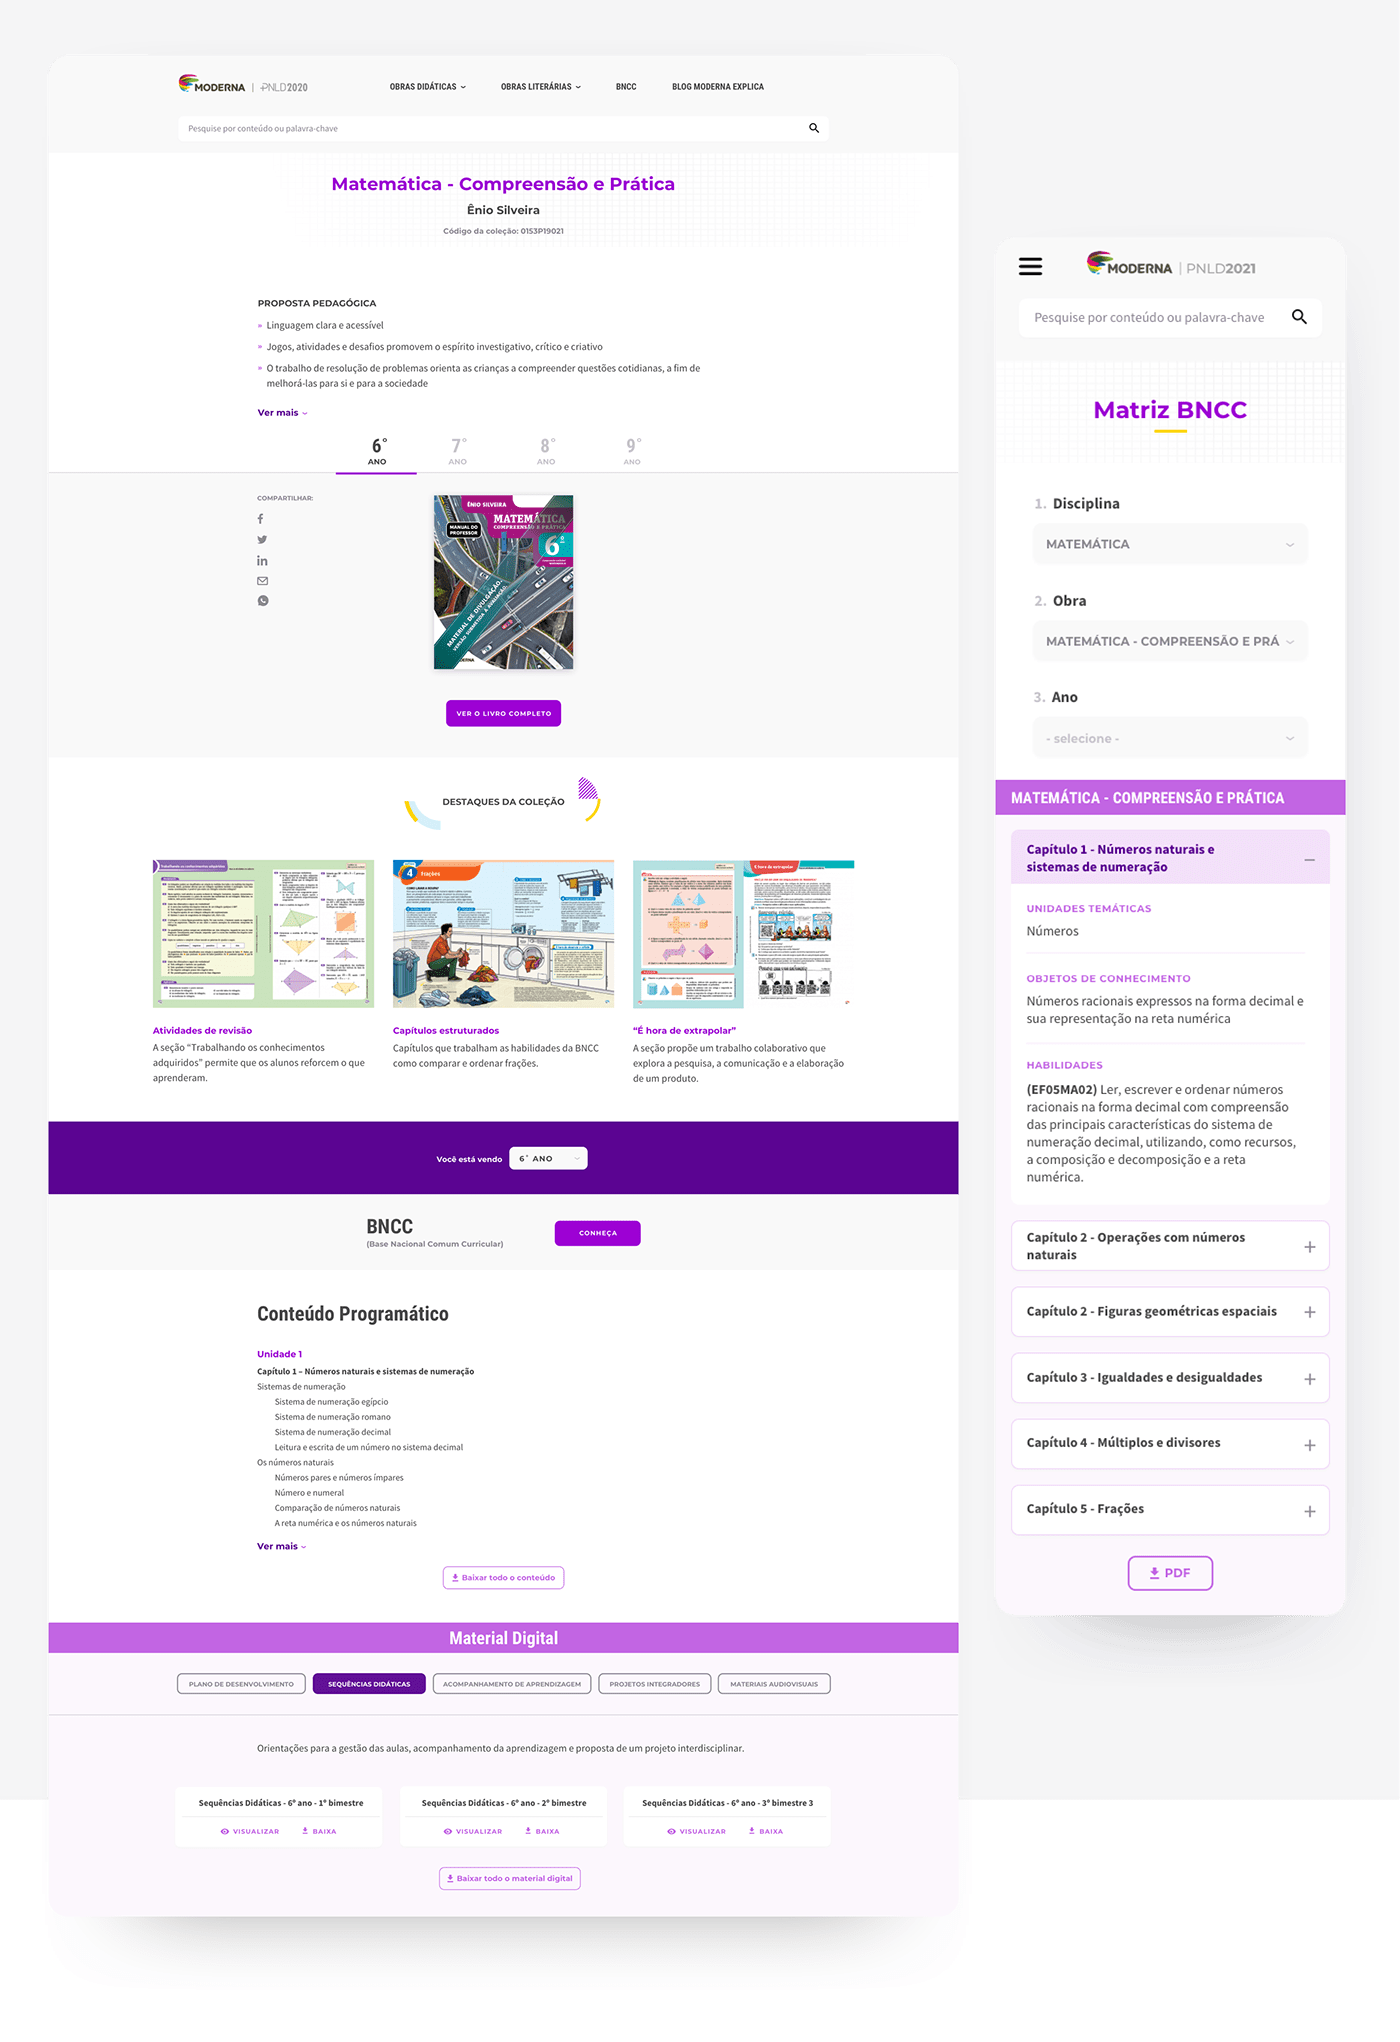 digital textbooks educational brand educational content middle school Modern flat publishing house website Responsive Design schoolbooks textbook resources website redesign